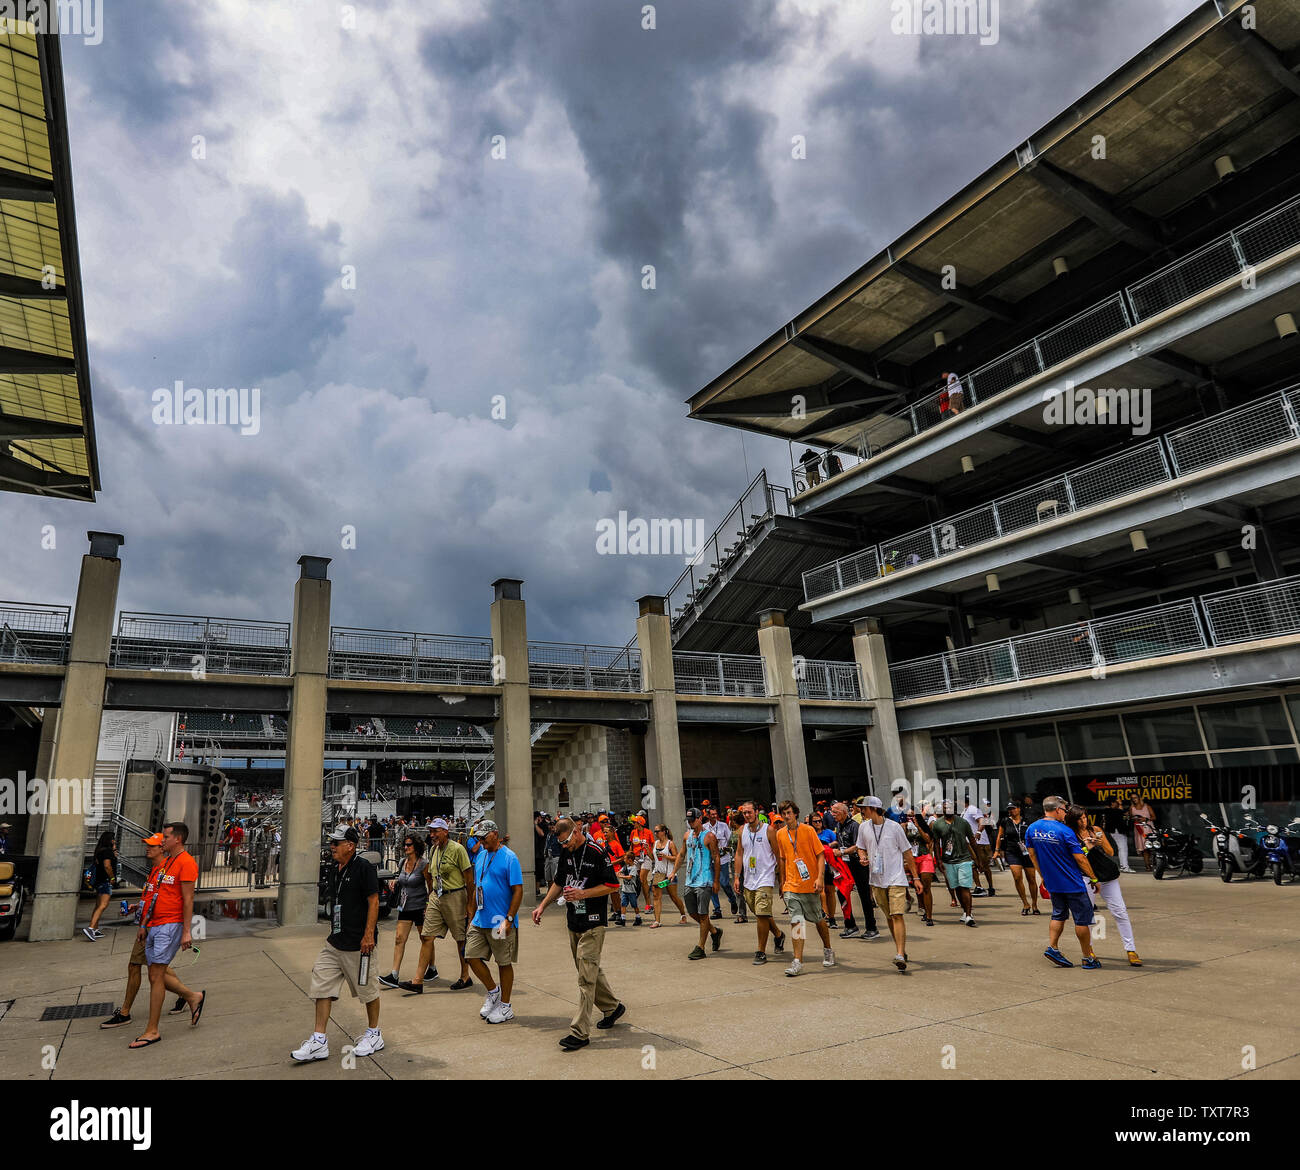 Fans file out of the grandstand as a large thunderstorm approaches shortly after the start of the 2017 Brickyard 400,  at the Indianapolis Motor Speedway on July 23, 2017 in Indianapolis, Indiana. The race has been red flagged till the storm passes. Photo by Edwin Locke/UPI Stock Photo